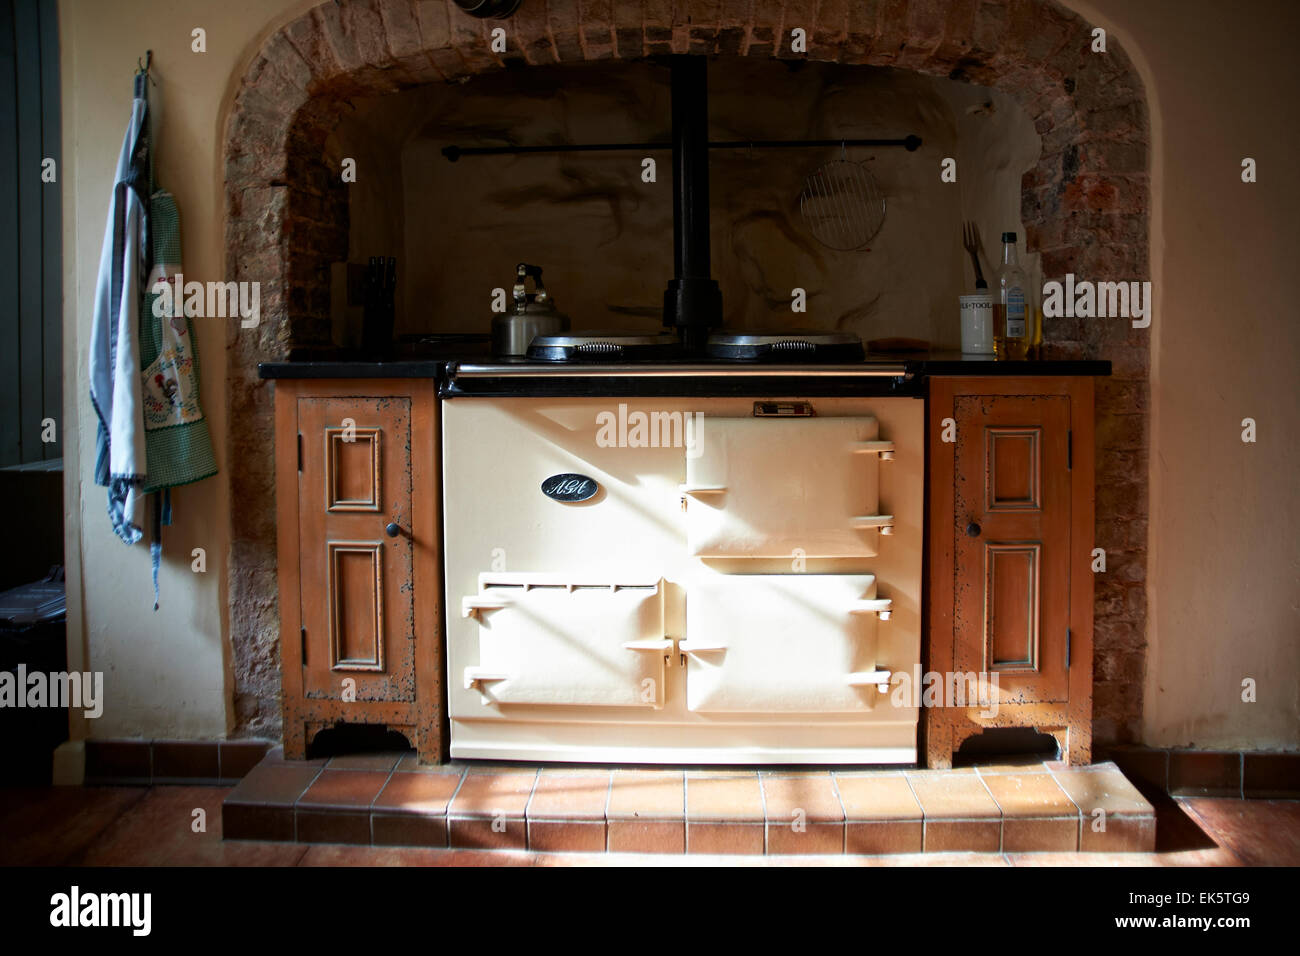 Old fashioned Aga in a country kitchen - Stock Image